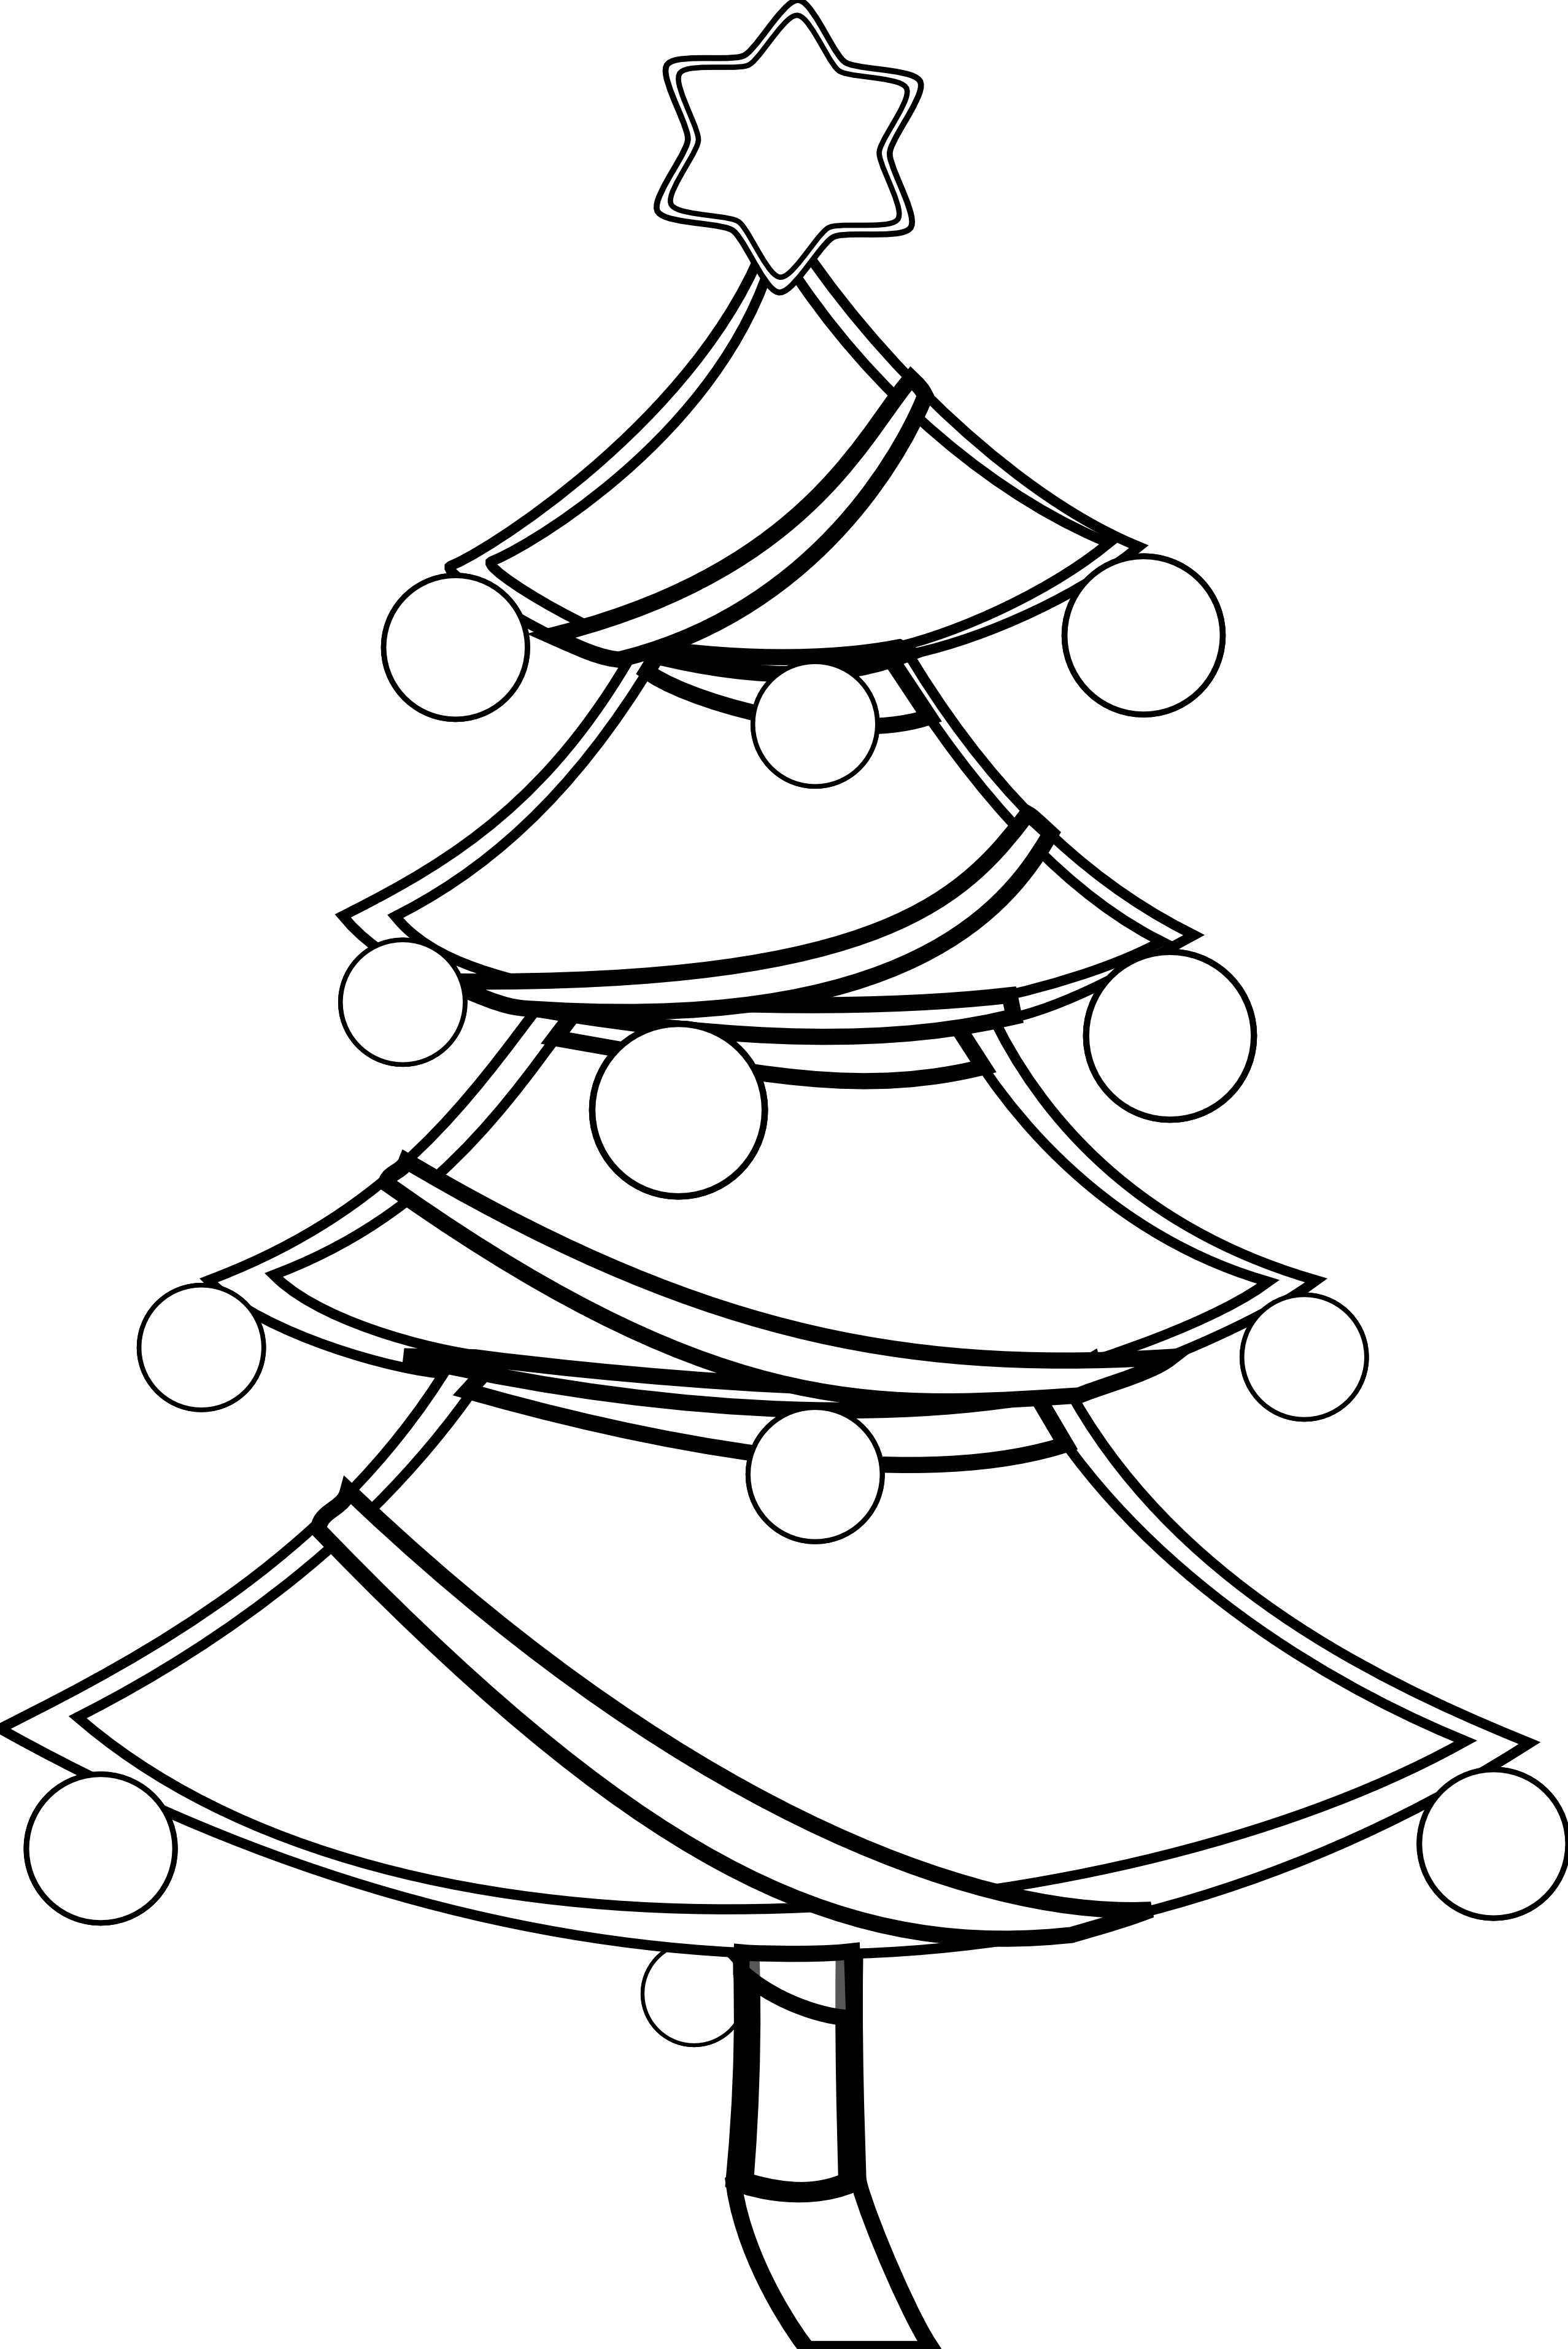 Christmas tree lighting black and white clipart picture free library Xmas Stuff For > Christmas Candy Clip Art Black And White | Crafts ... picture free library